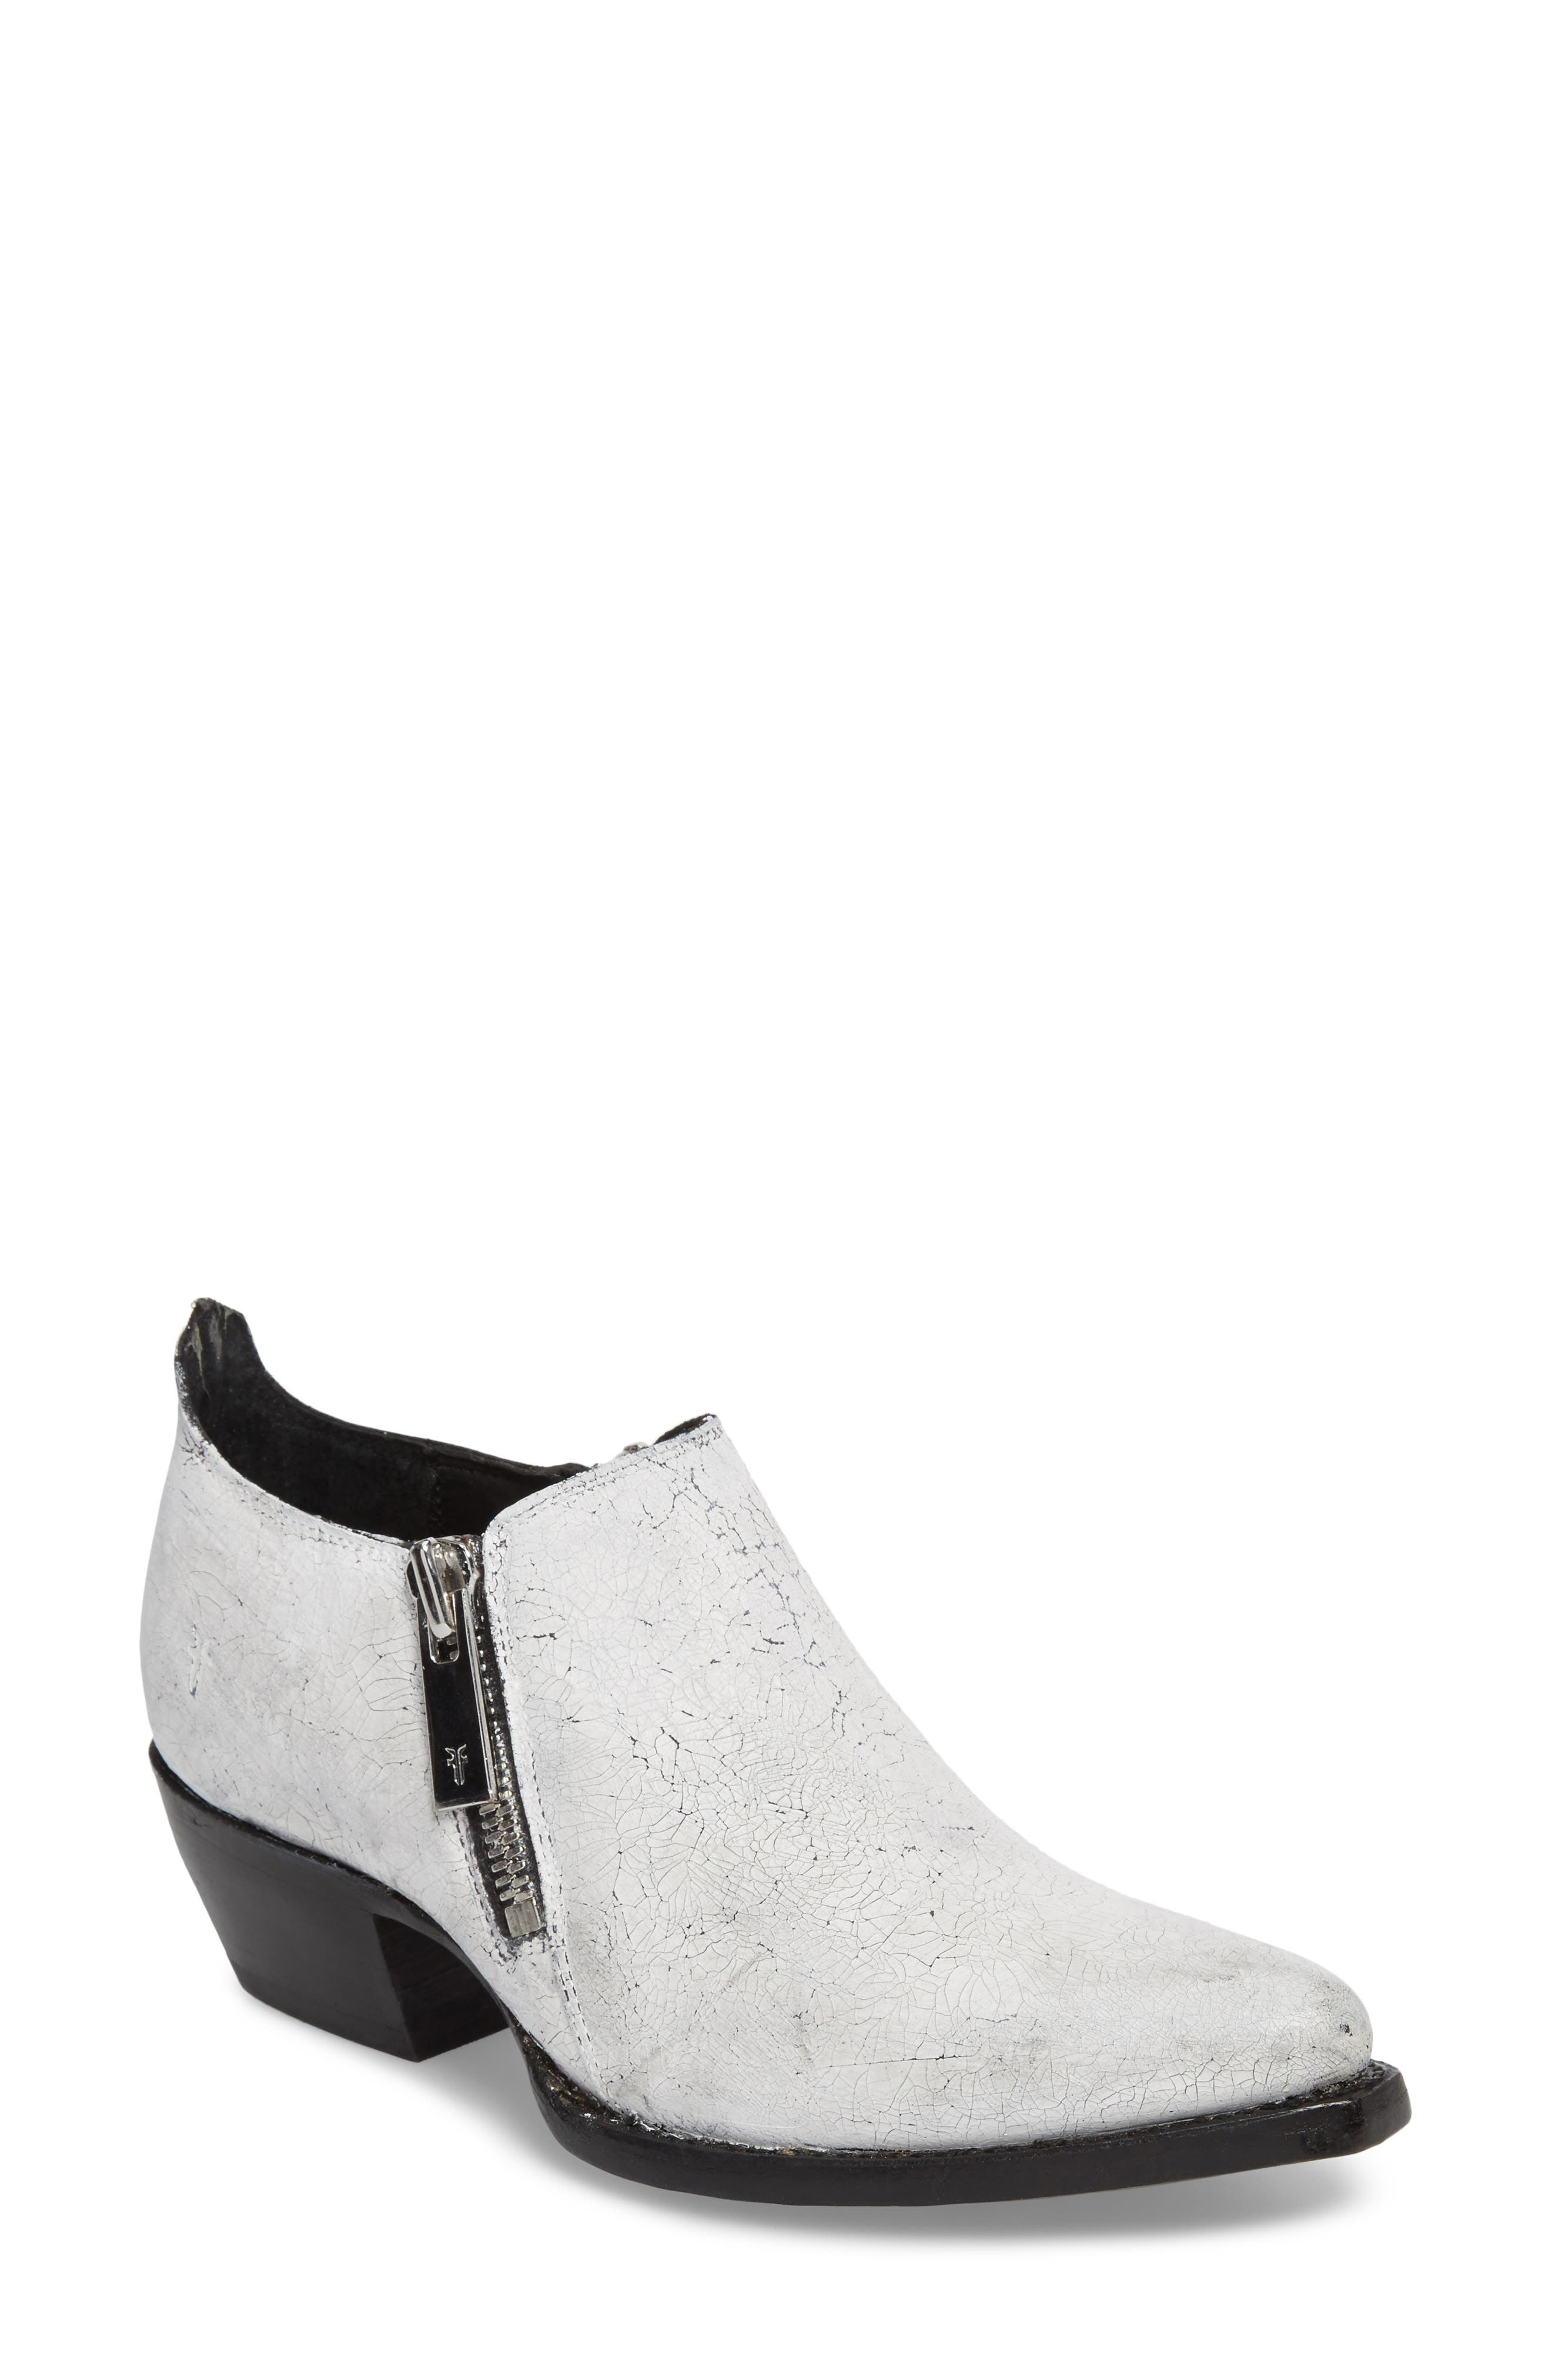 Sacha Double Zip Bootie,                             Main thumbnail 1, color,                             White